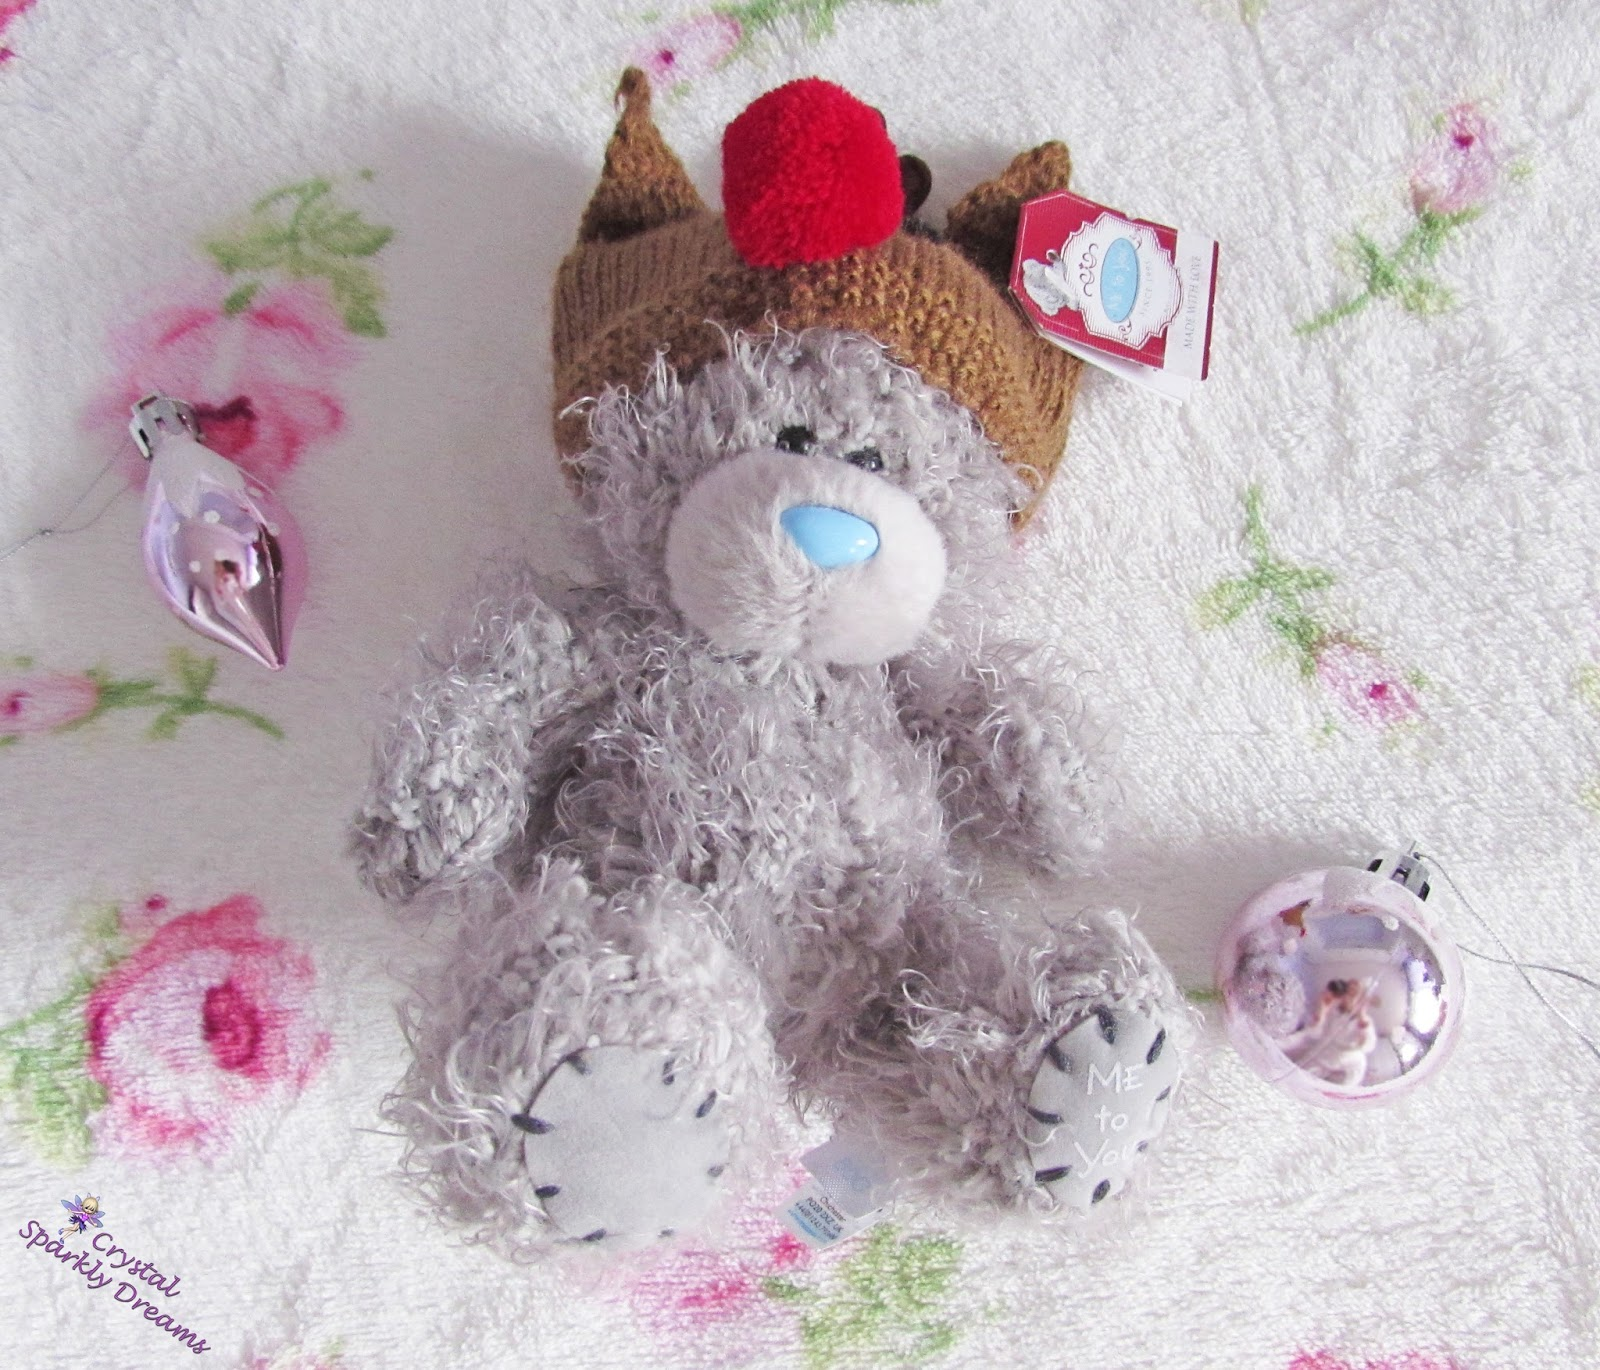 Crystal Sparkly Dreams January 2017 Canon Eos Couple Teddies Bear I Also Love This Adorable Teddy As You Might Remember From My Last Of Christmas Gift Posts Im Always Given A Every Single Year